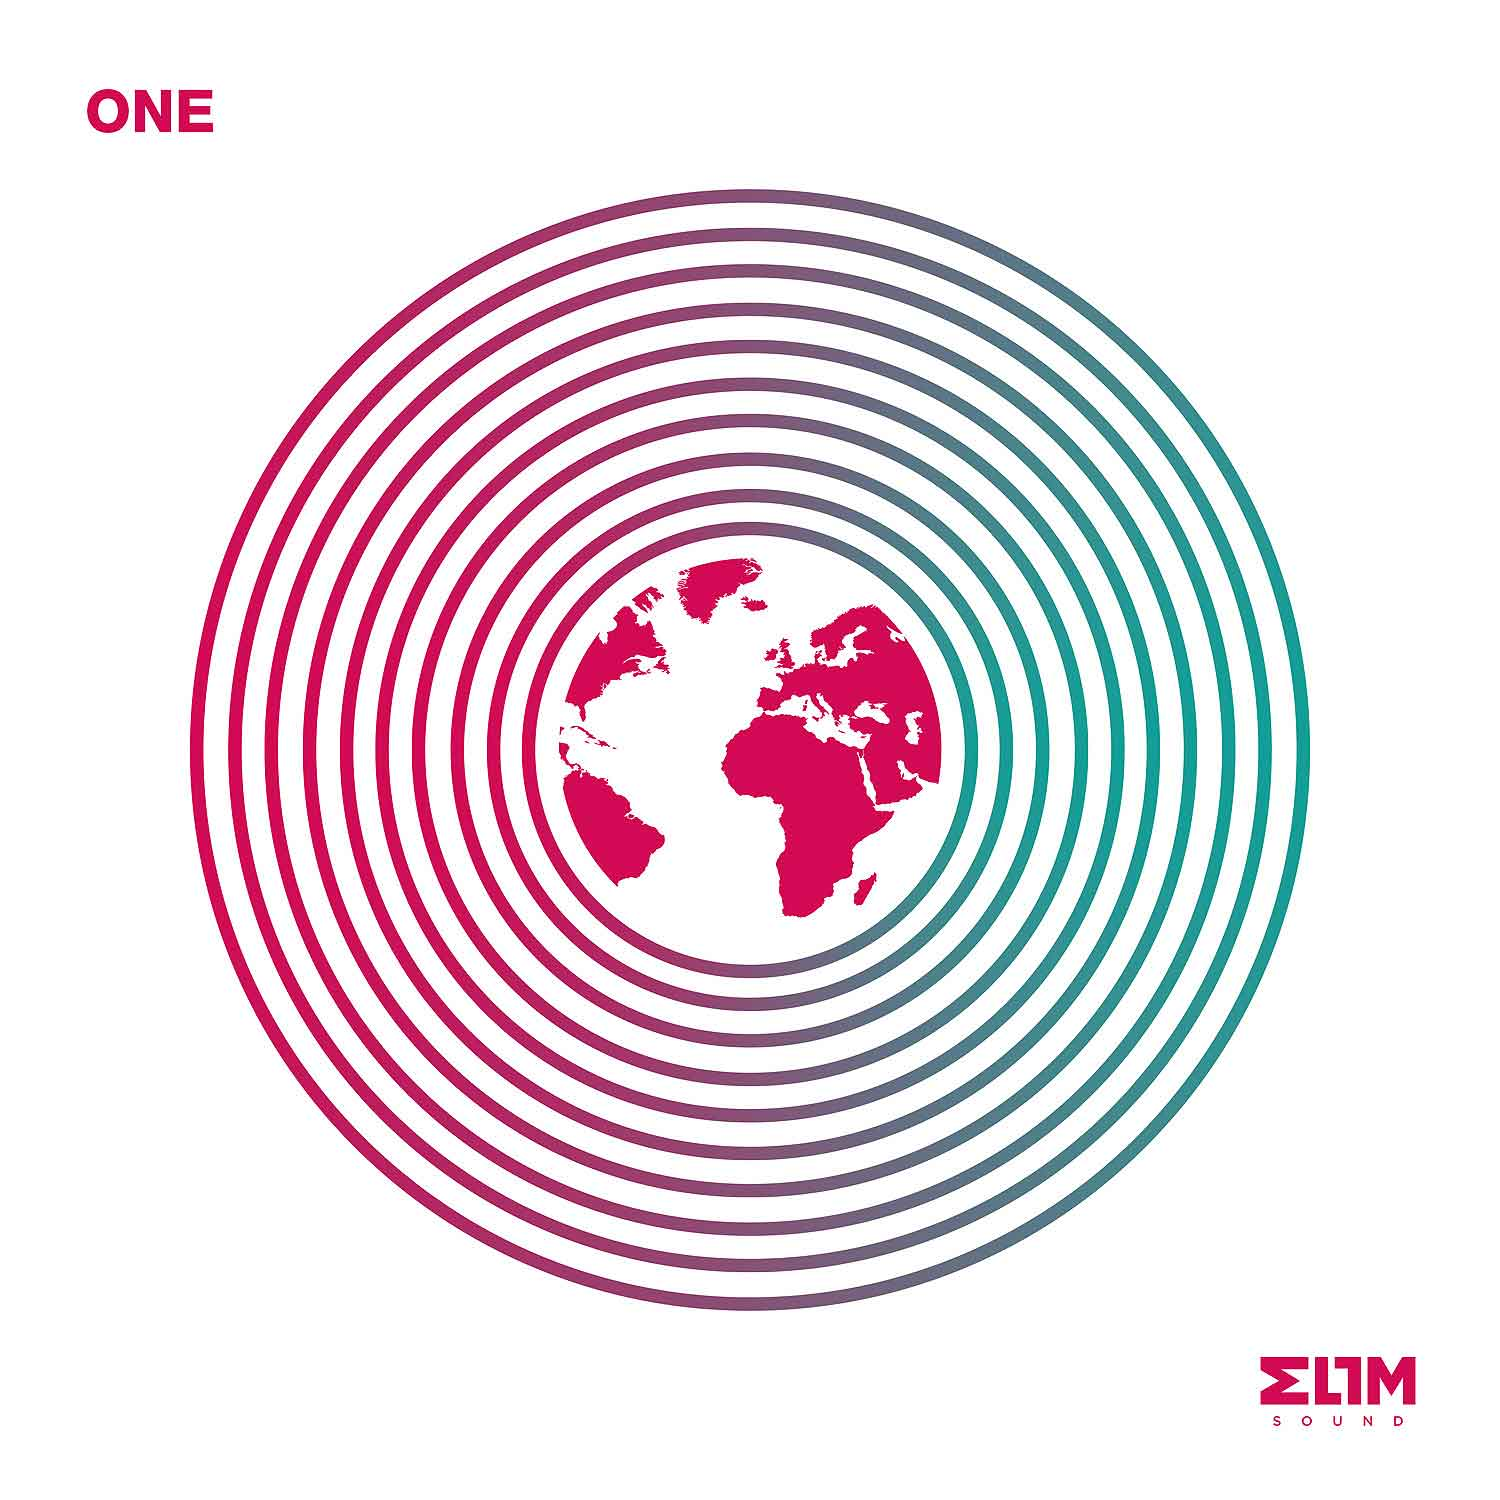 singles in elim Elim singles ministry 1,190 likes 12 talking about this the elim singles ministry is comprised of single adults (non-married, from 20-39 years old.